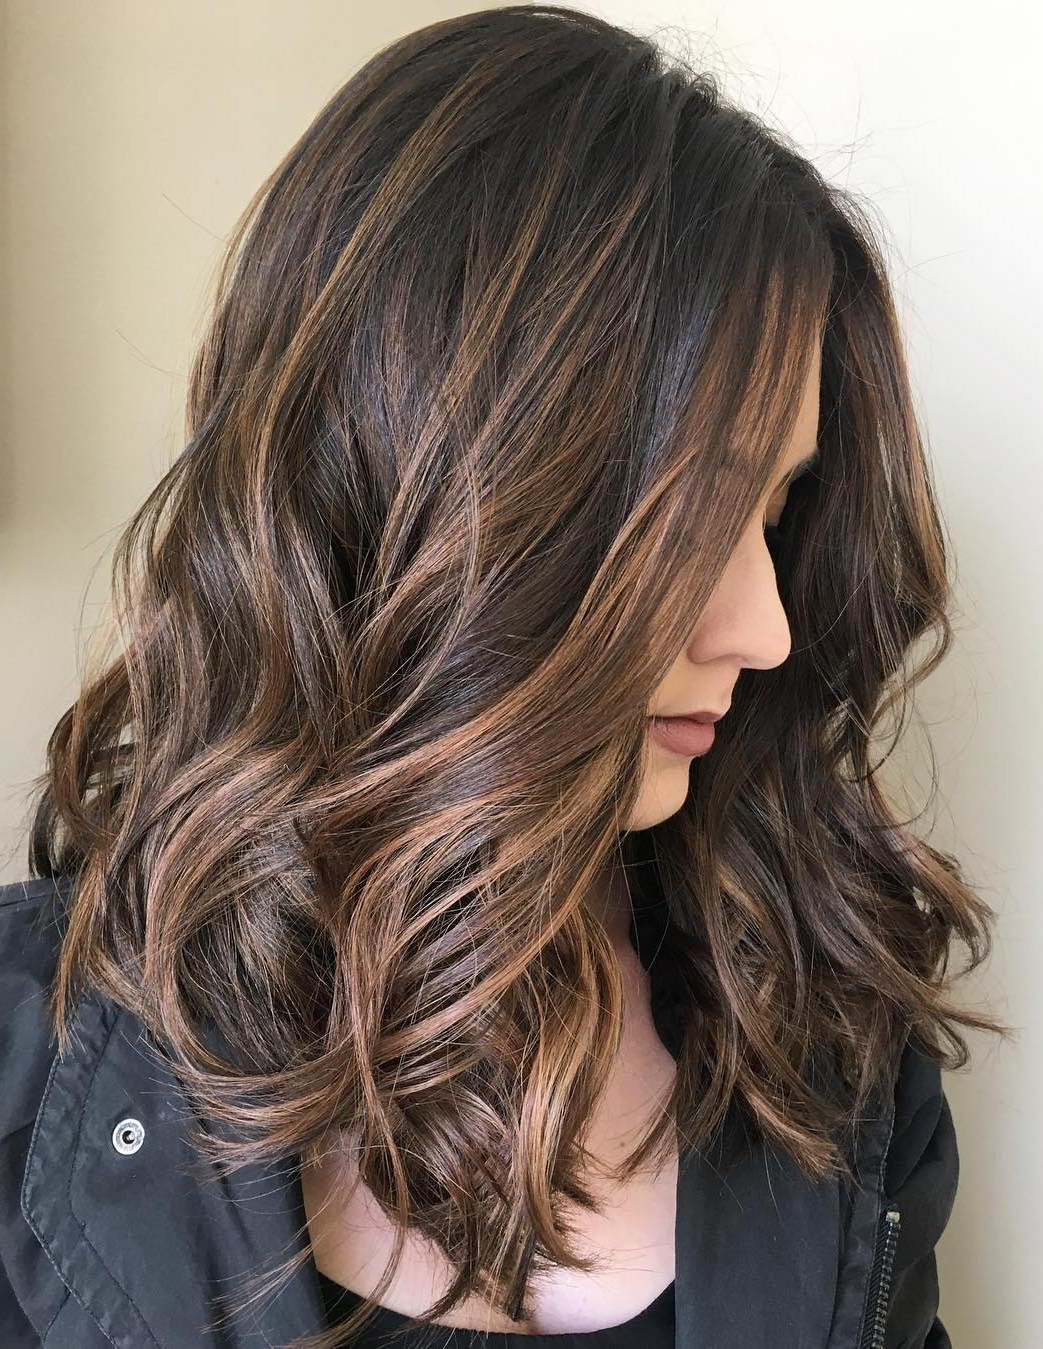 70 Balayage Hair Color Ideas With Blonde, Brown And Caramel Highlights With High Contrast Blonde Balayage Bob Hairstyles (Gallery 18 of 20)